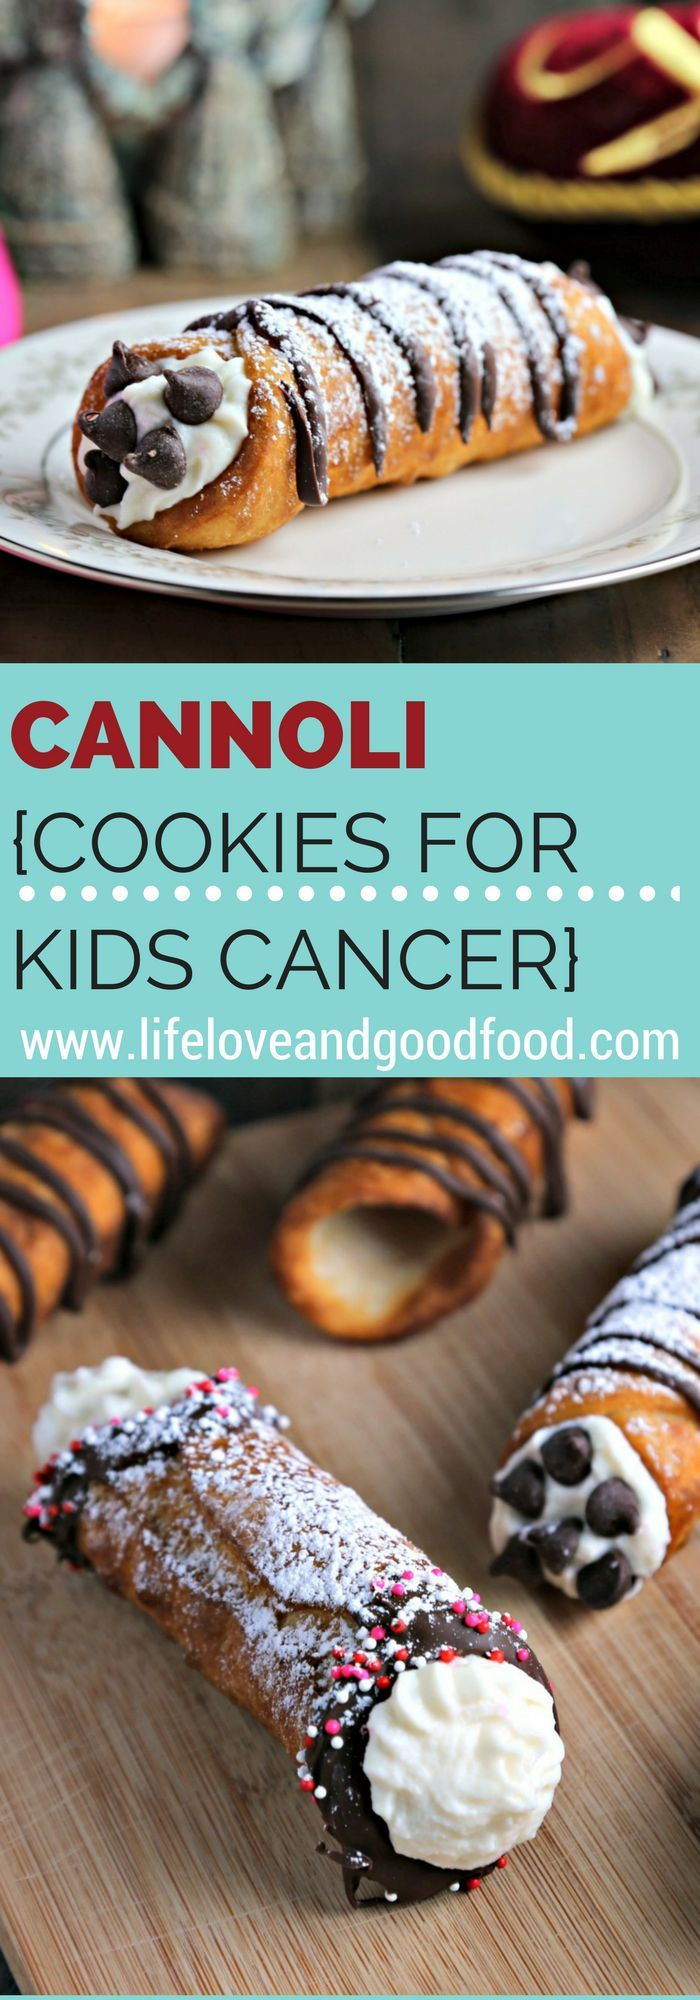 Cookies for Kids Cancer: Good Cannoli | Recipe | Cannoli, Food and ...